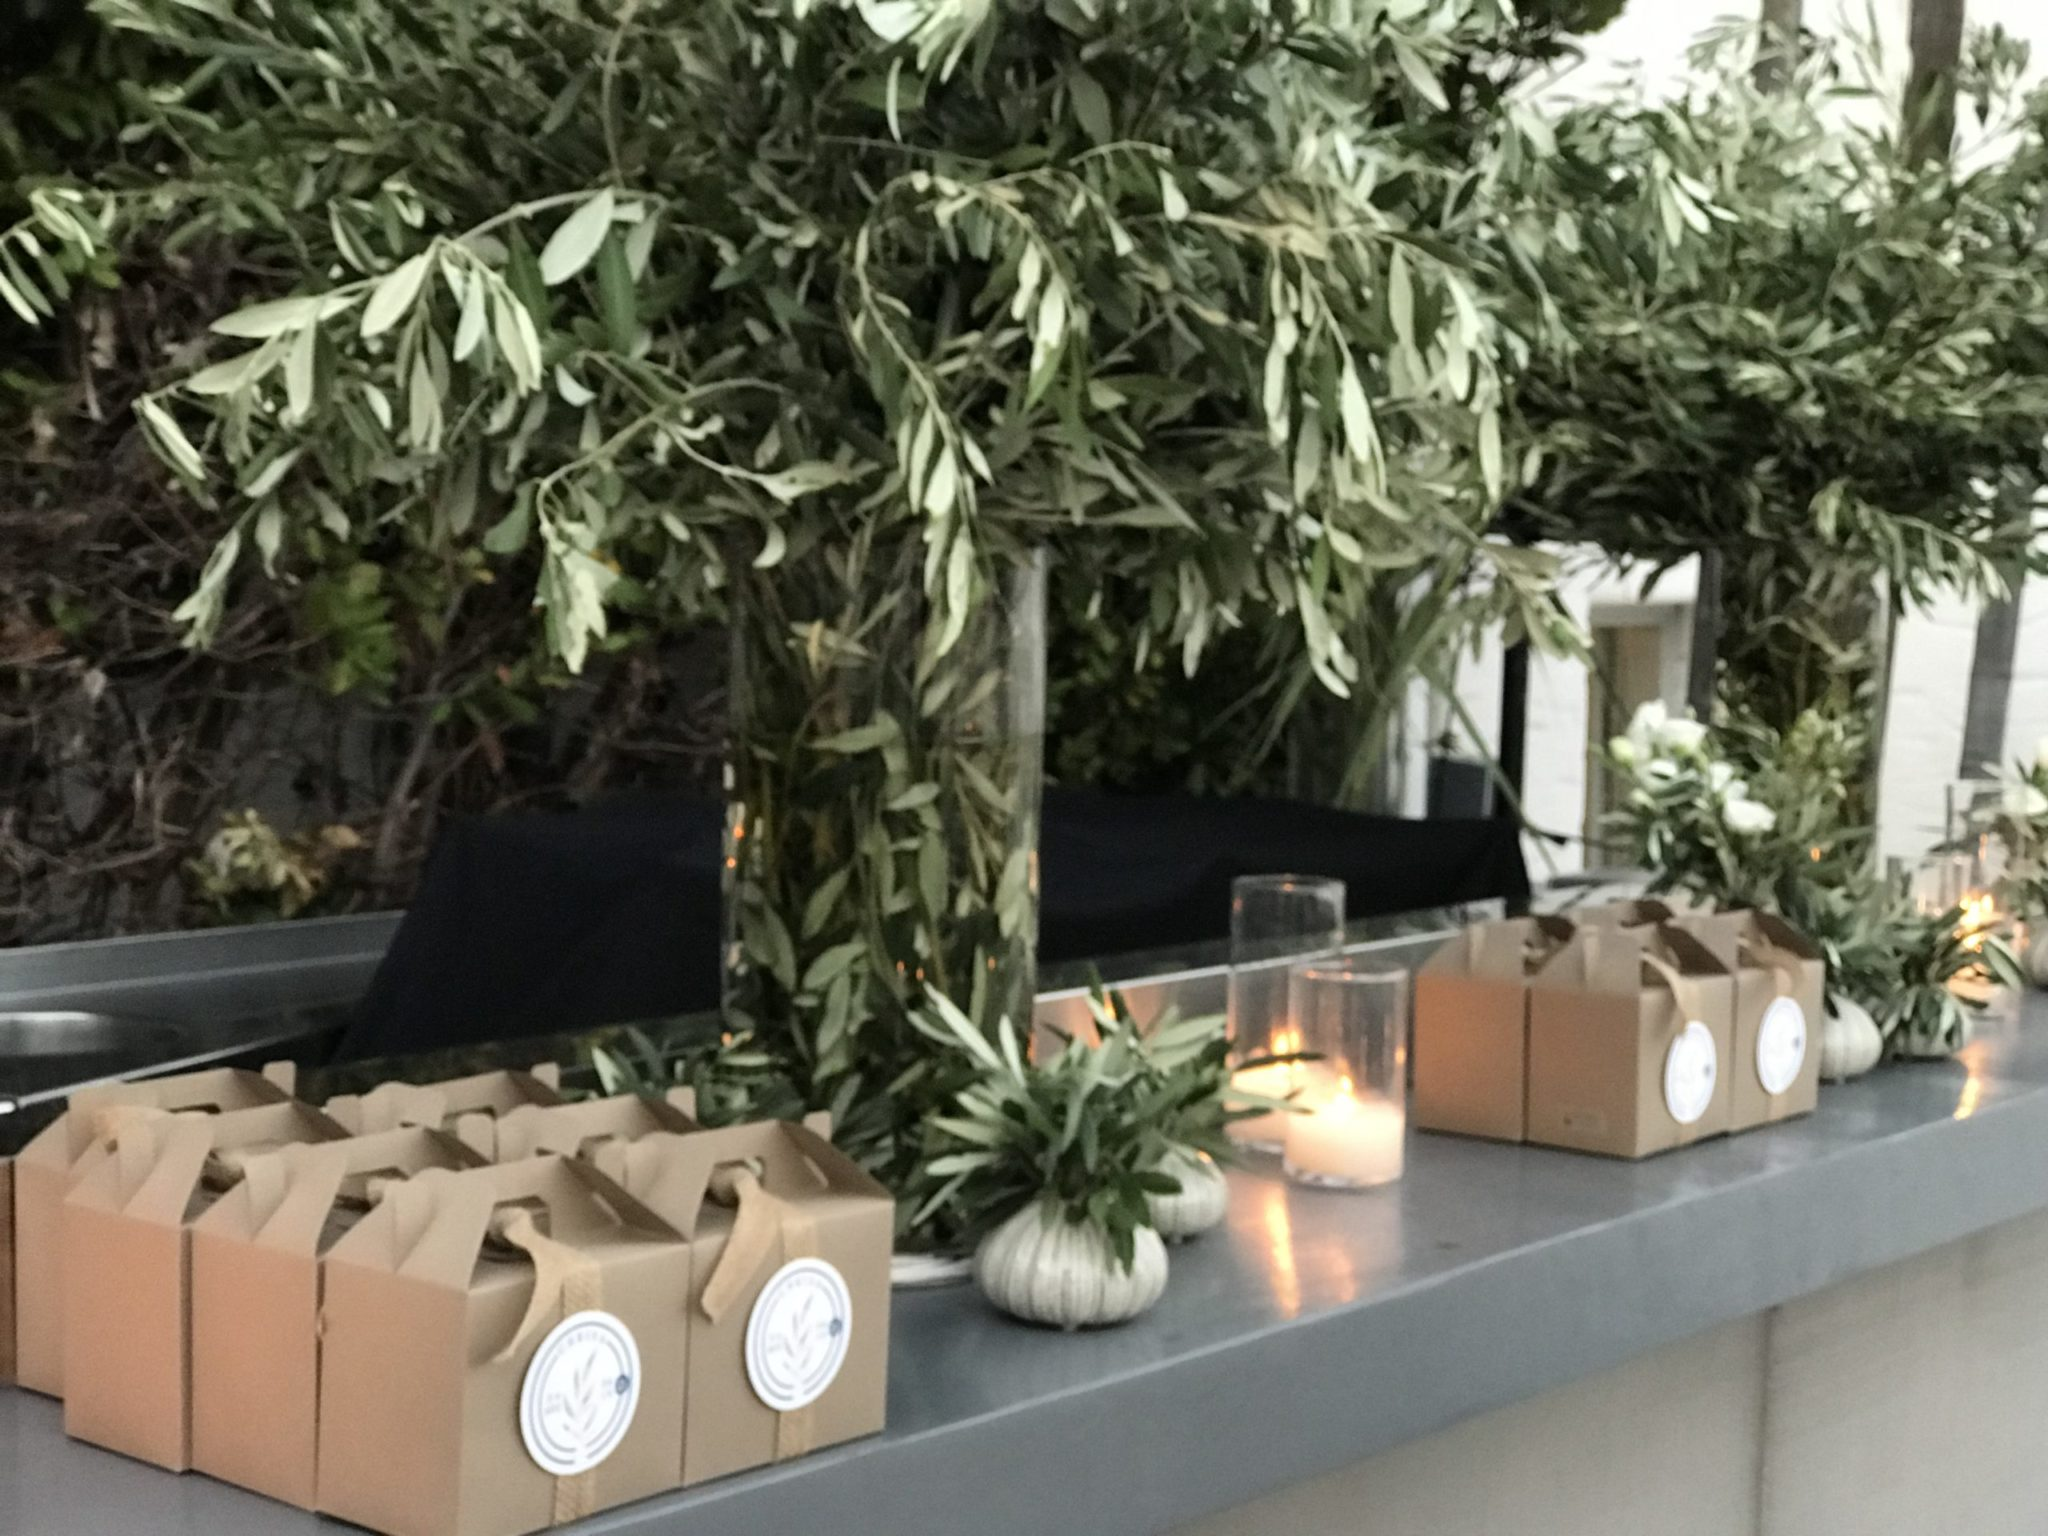 Totally Greek-party gift boxes-set up